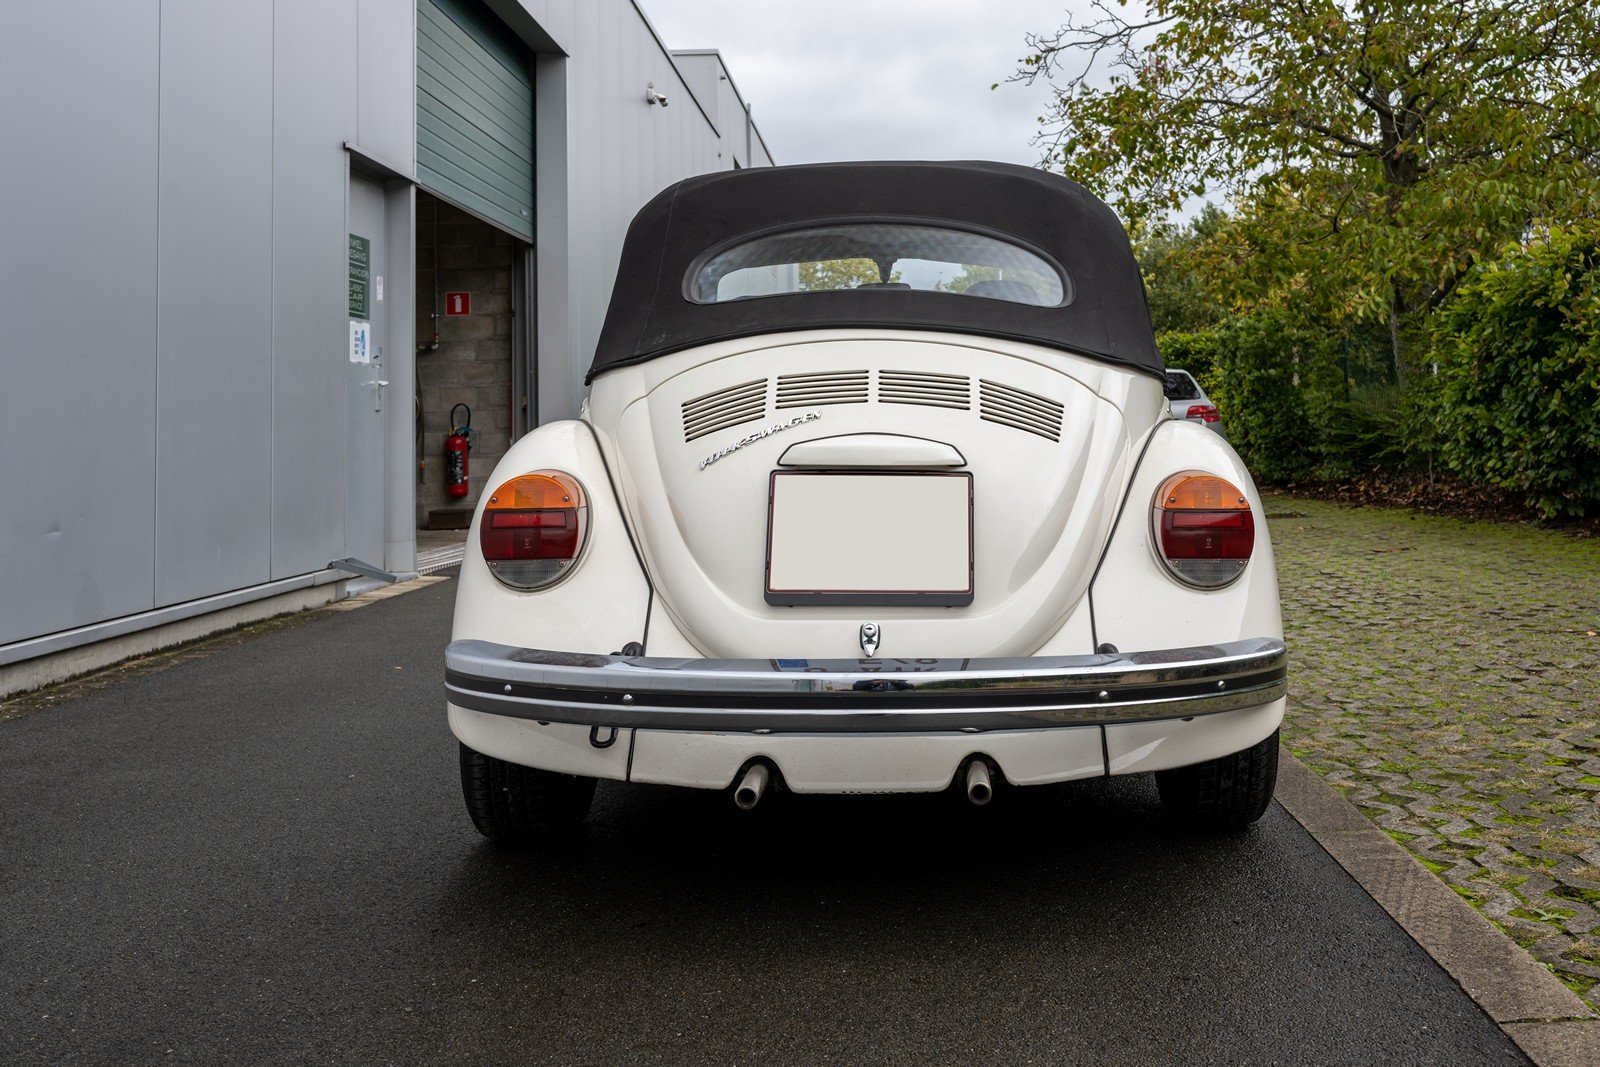 1973 Volkswagen Beetle Type 1303 Cabriolet For Sale (picture 11 of 39)